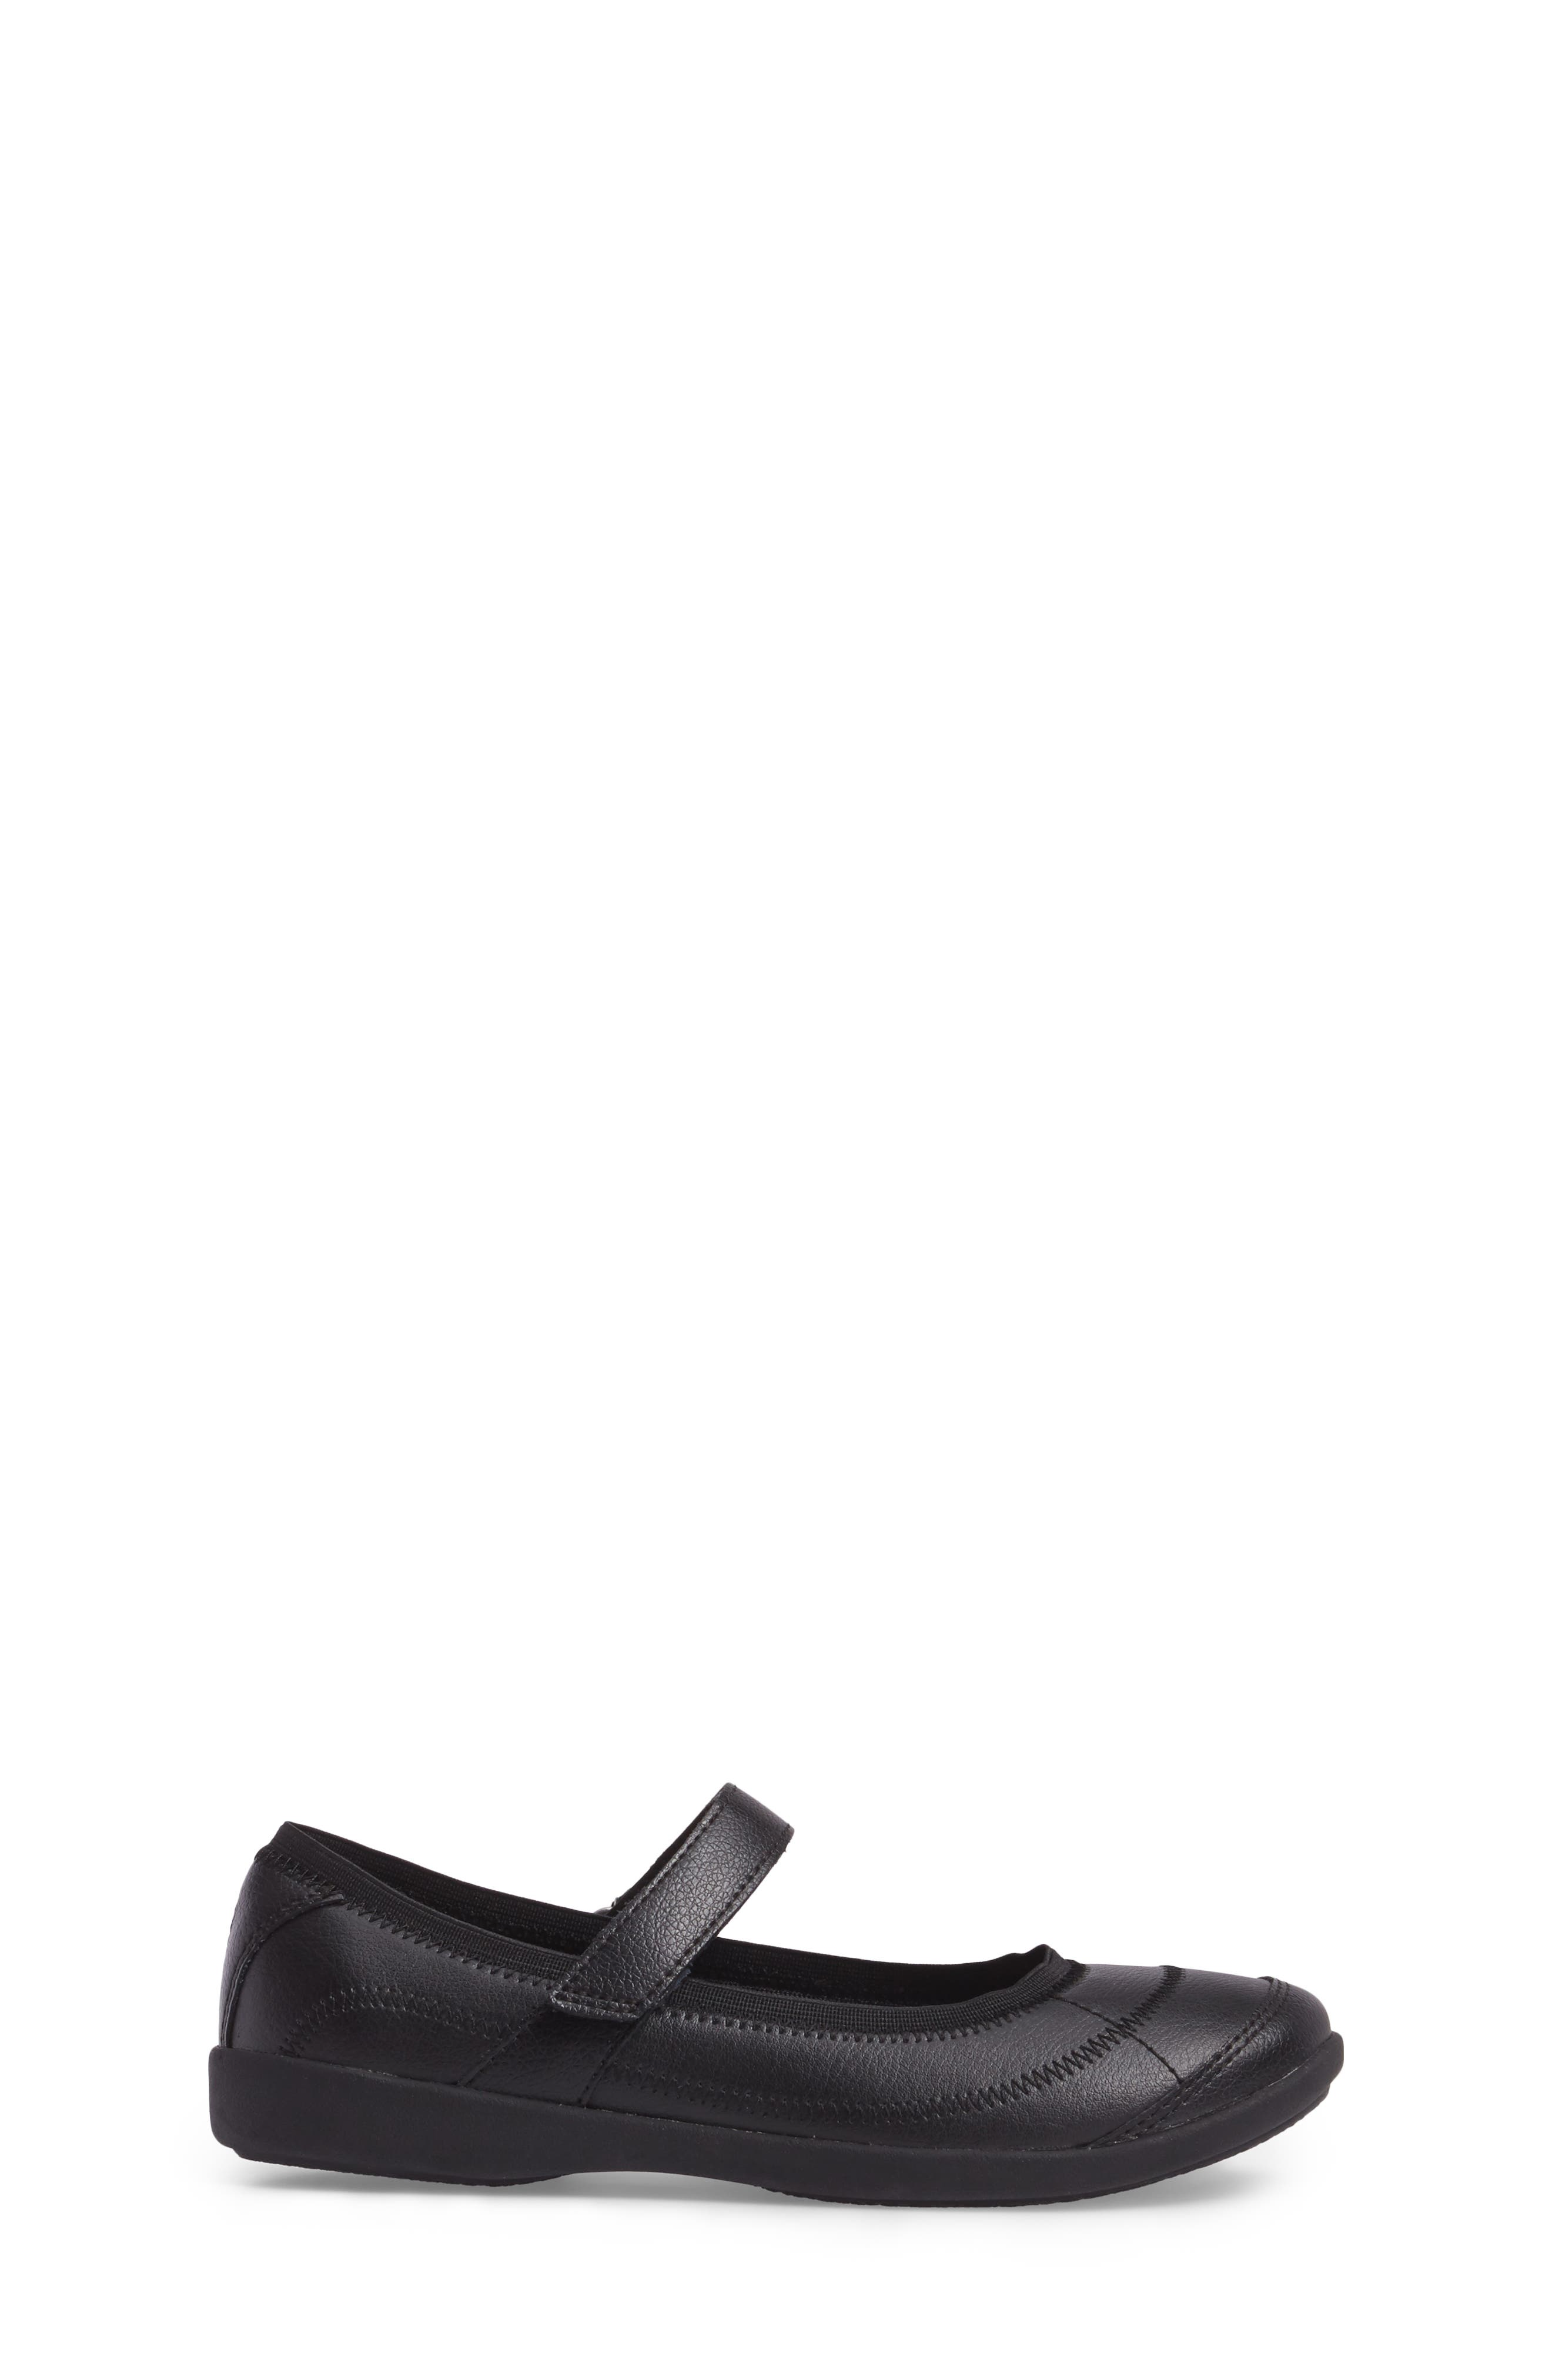 HUSH PUPPIES<SUP>®</SUP>, Reese Mary Jane Flat, Alternate thumbnail 3, color, BLACK LEATHER